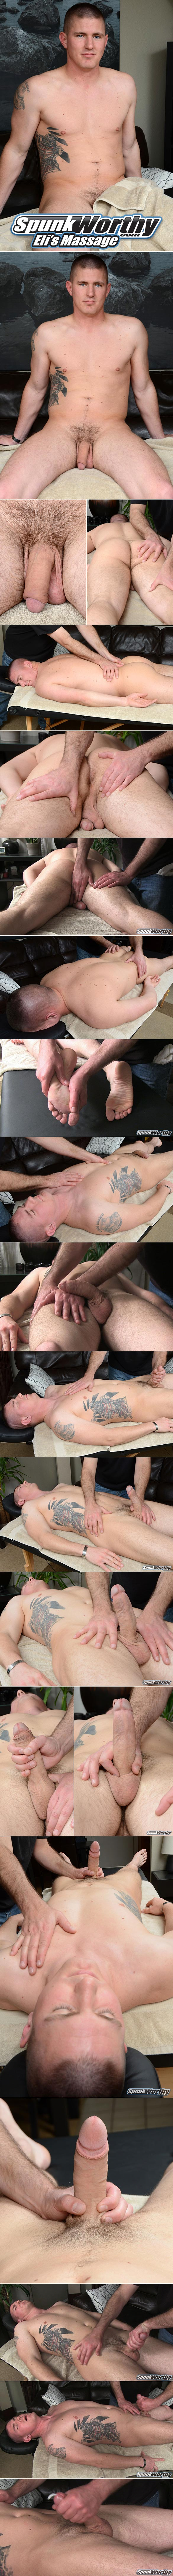 SpunkWorthy: Marine Eli gets a special massage